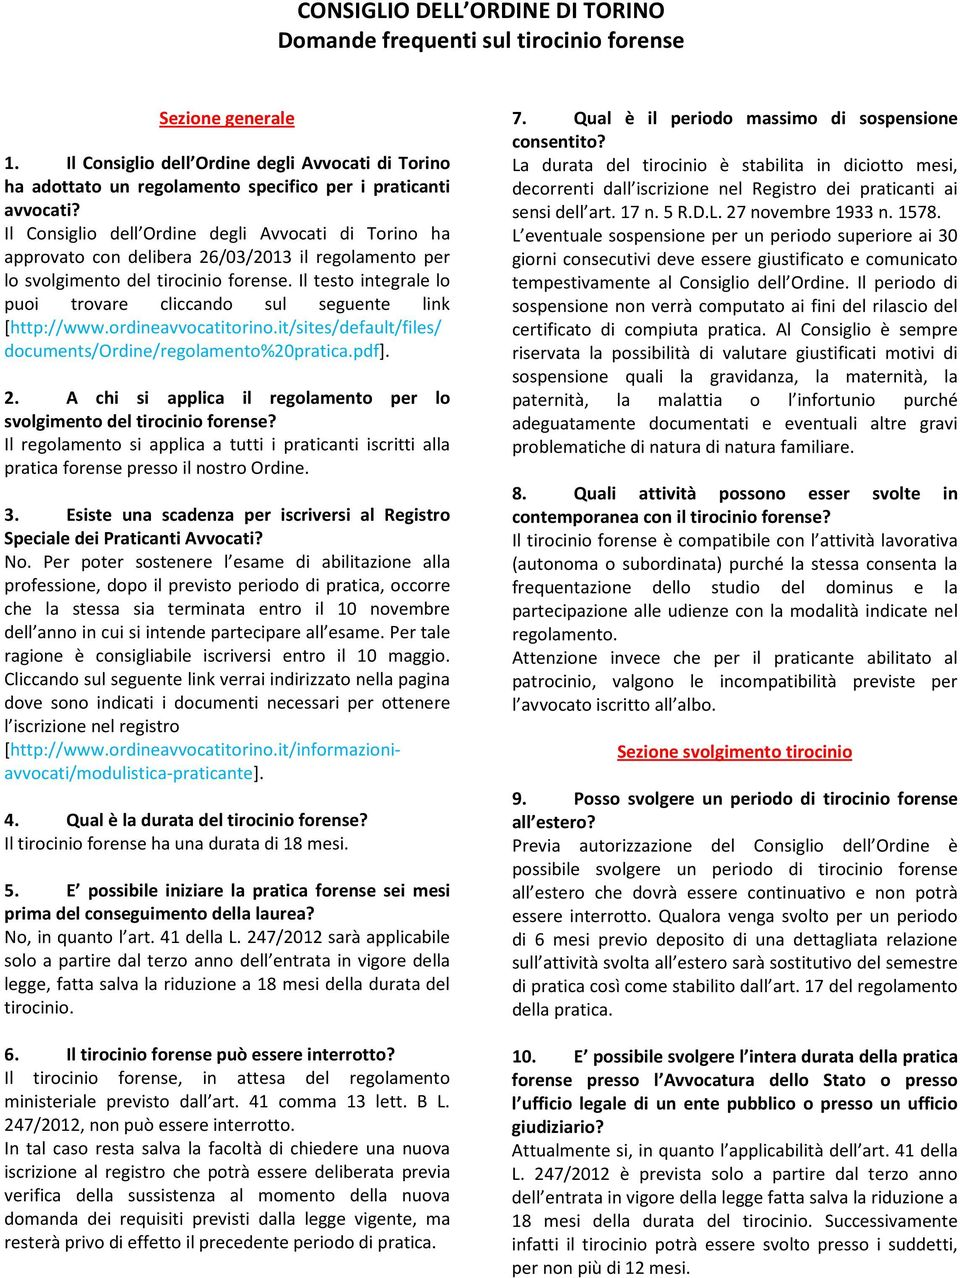 Il testo integrale lo puoi trovare cliccando sul seguente link [http://www.ordineavvocatitorino.it/sites/default/files/ documents/ordine/regolamento%20pratica.pdf]. 2.